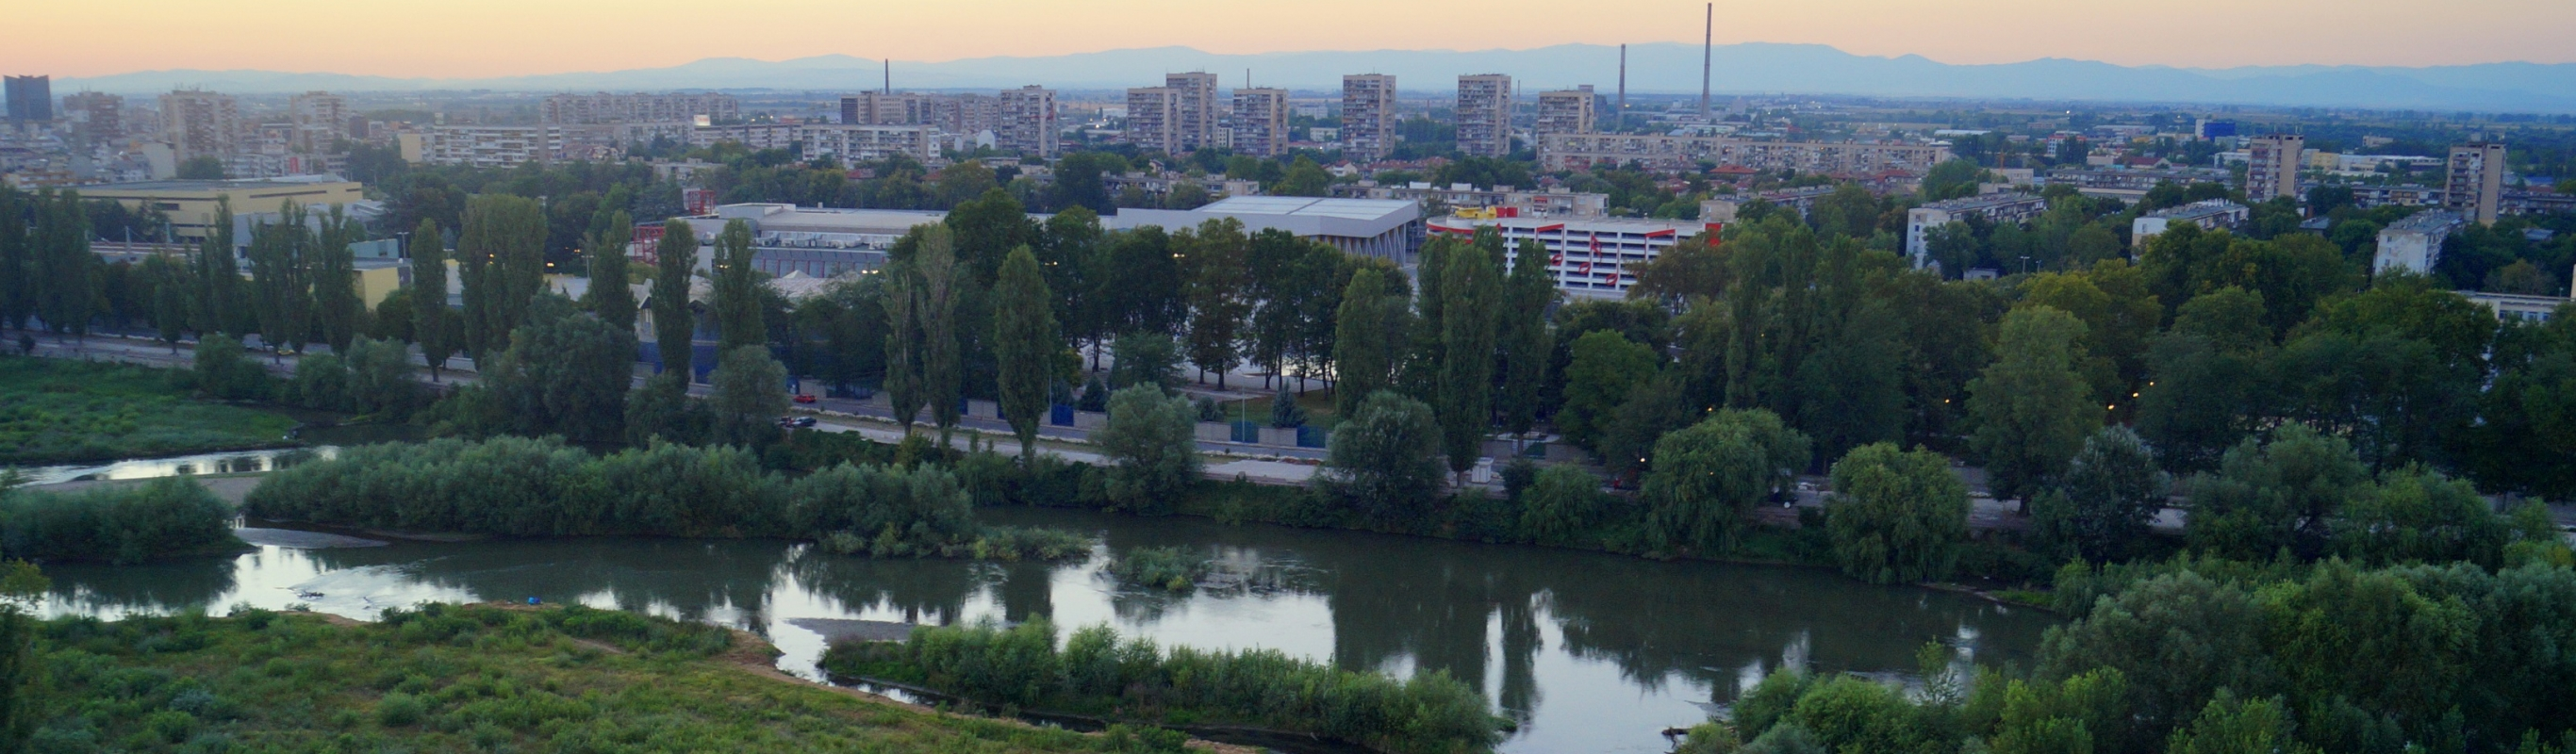 Maritza River – the past and the present of Plovdiv